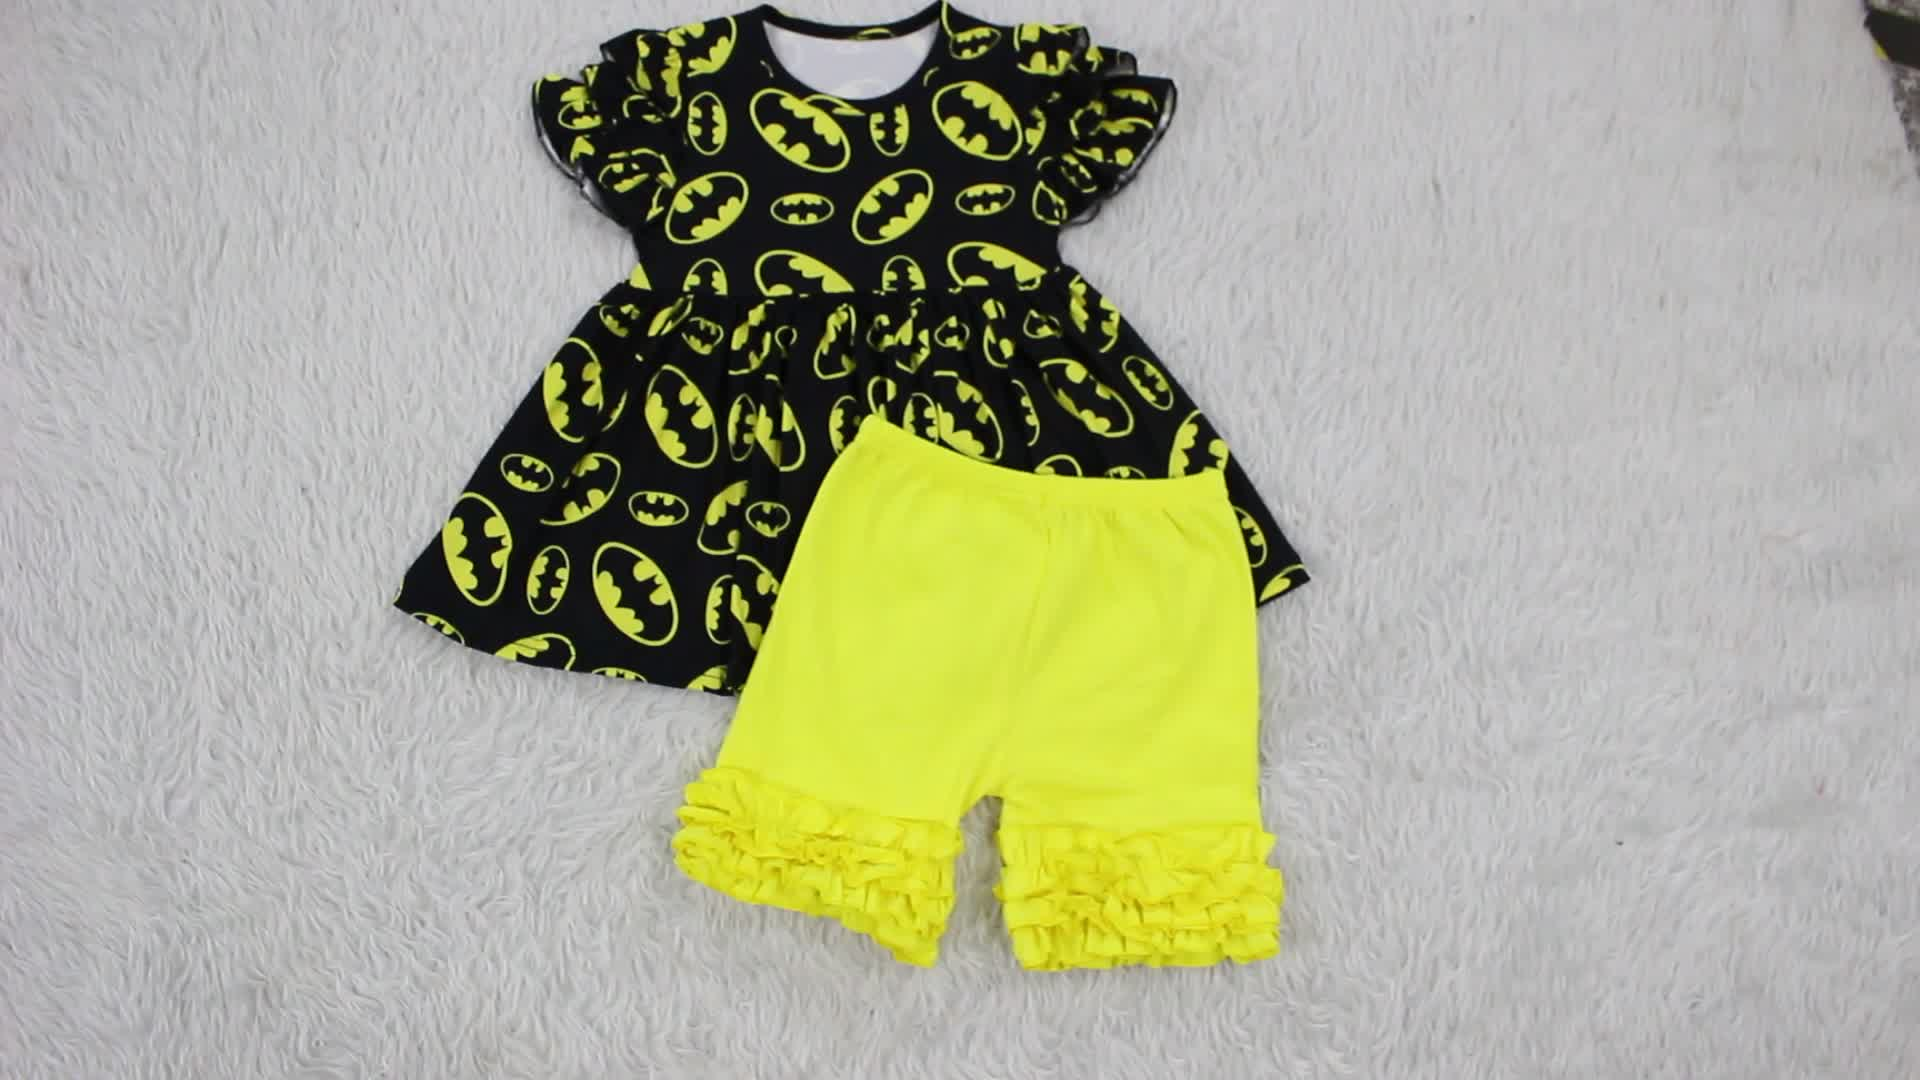 Boutique Girls Clothes Set Wholesale Summer Toddler Girls Mermaid Printed Tops and Pink 0-12T Short Sleeve Outfits